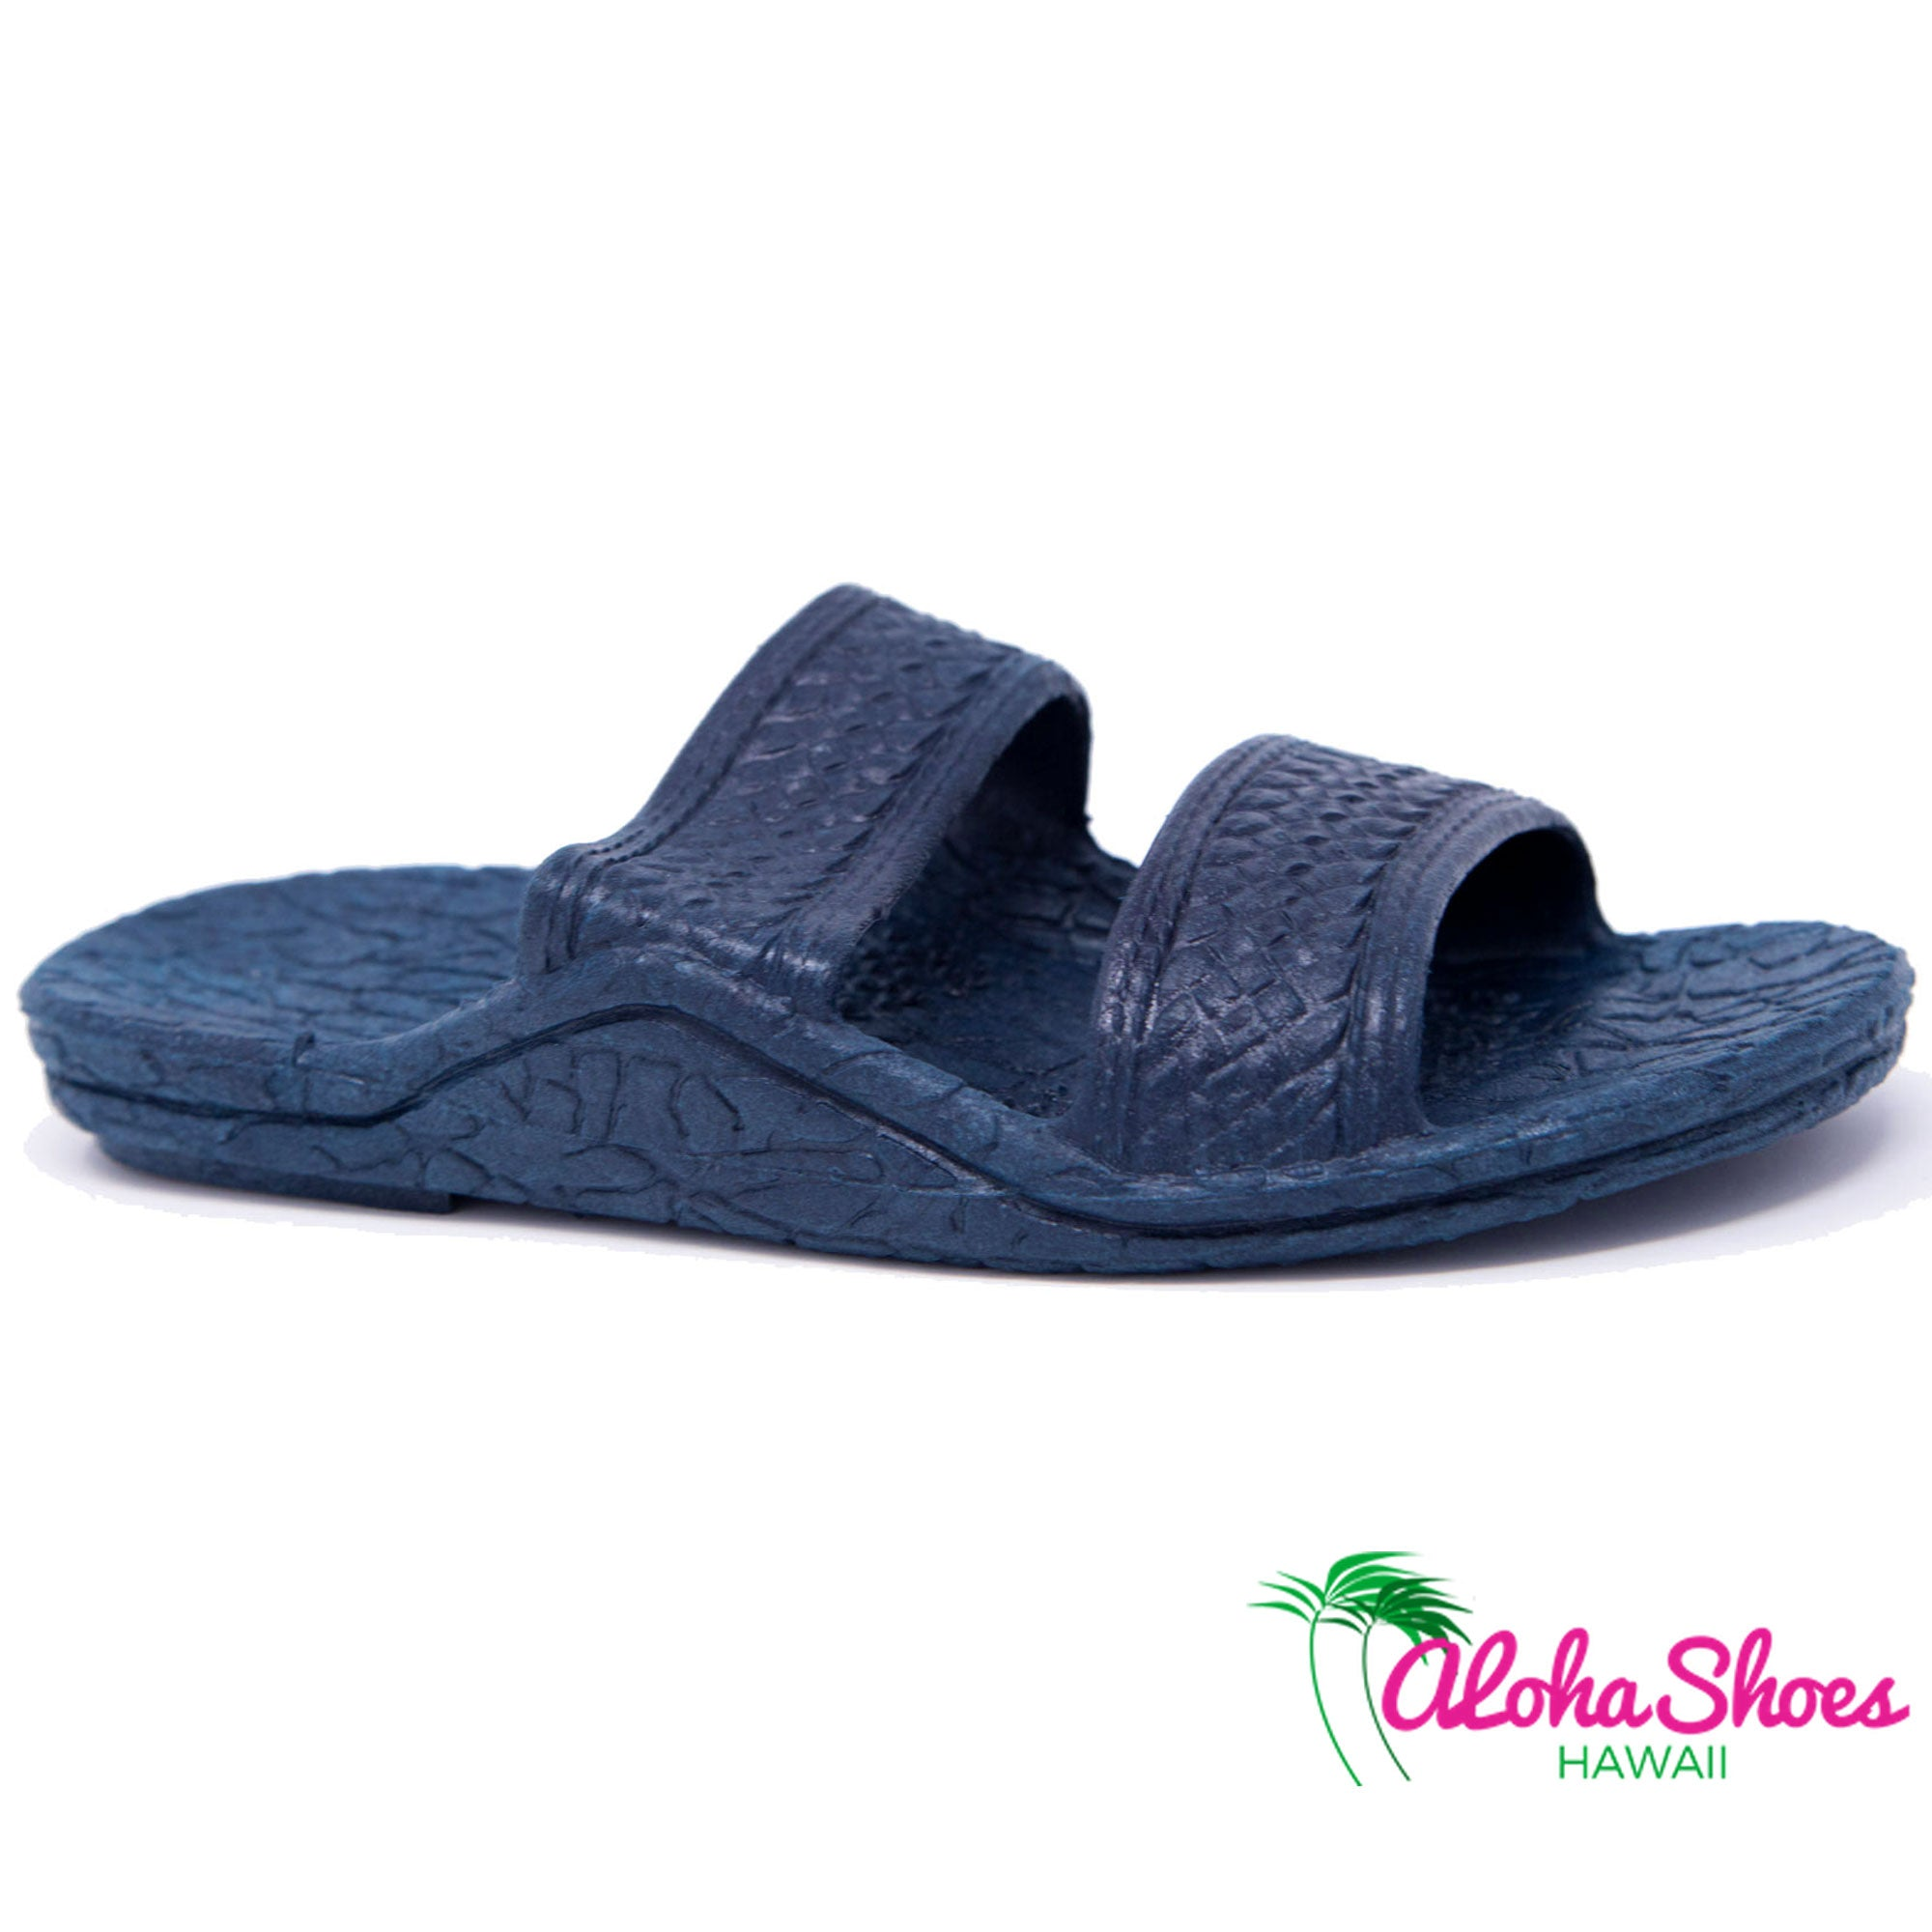 bbb0c68d3ddf Kids Jandals by Pali Hawaii Navy Hawaiian Design For Children -  AlohaShoes.com